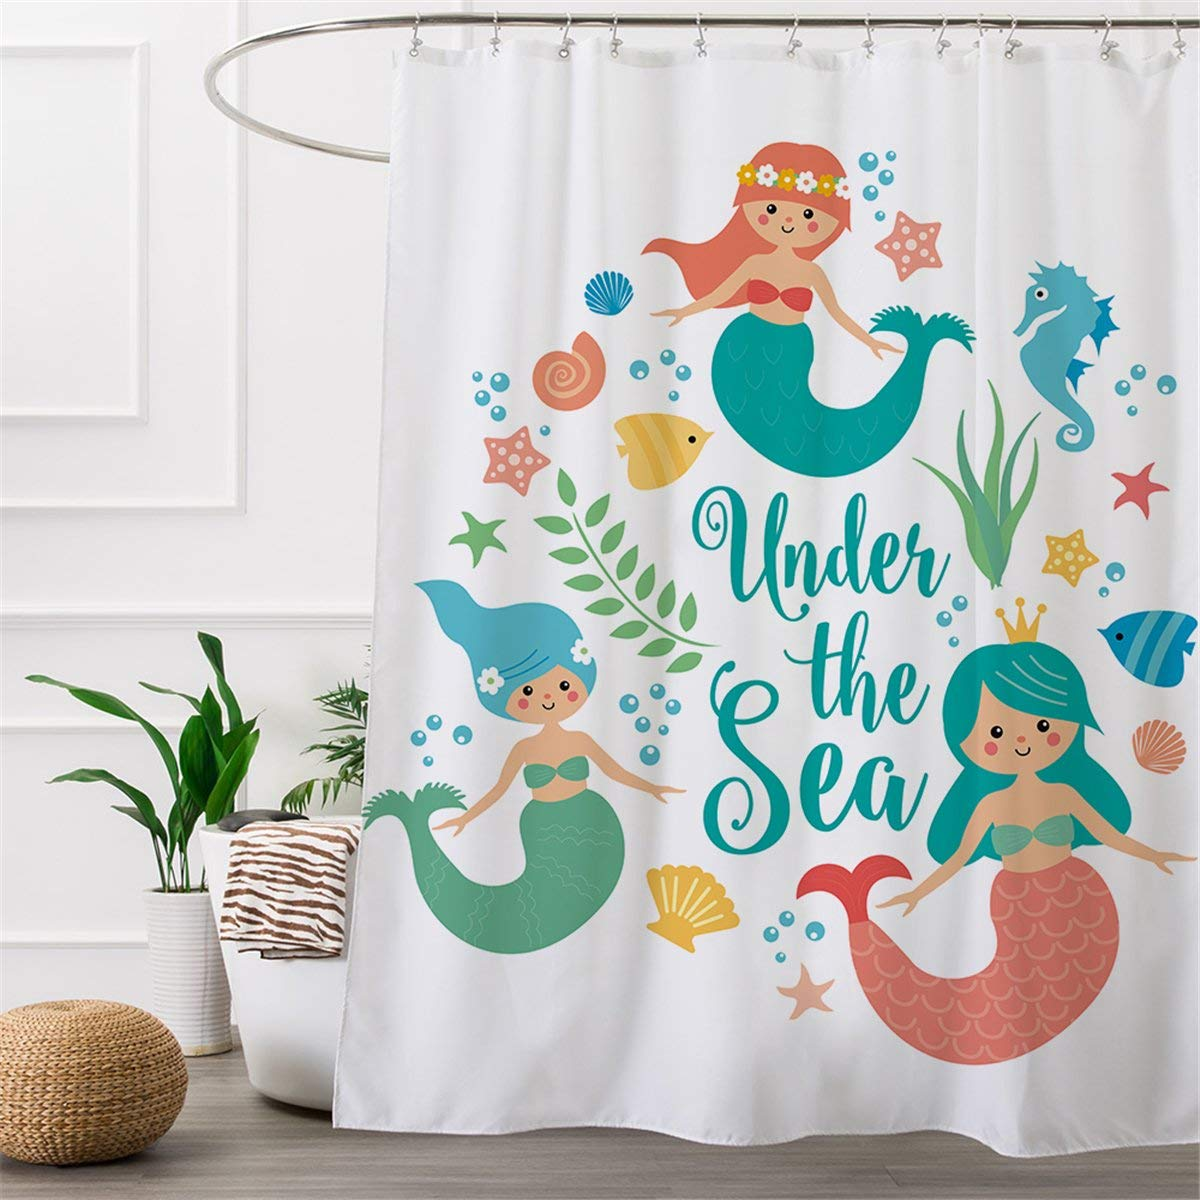 Ariel Shower Curtain Cheap Mermaid Shower Curtain Find Mermaid Shower Curtain Deals On